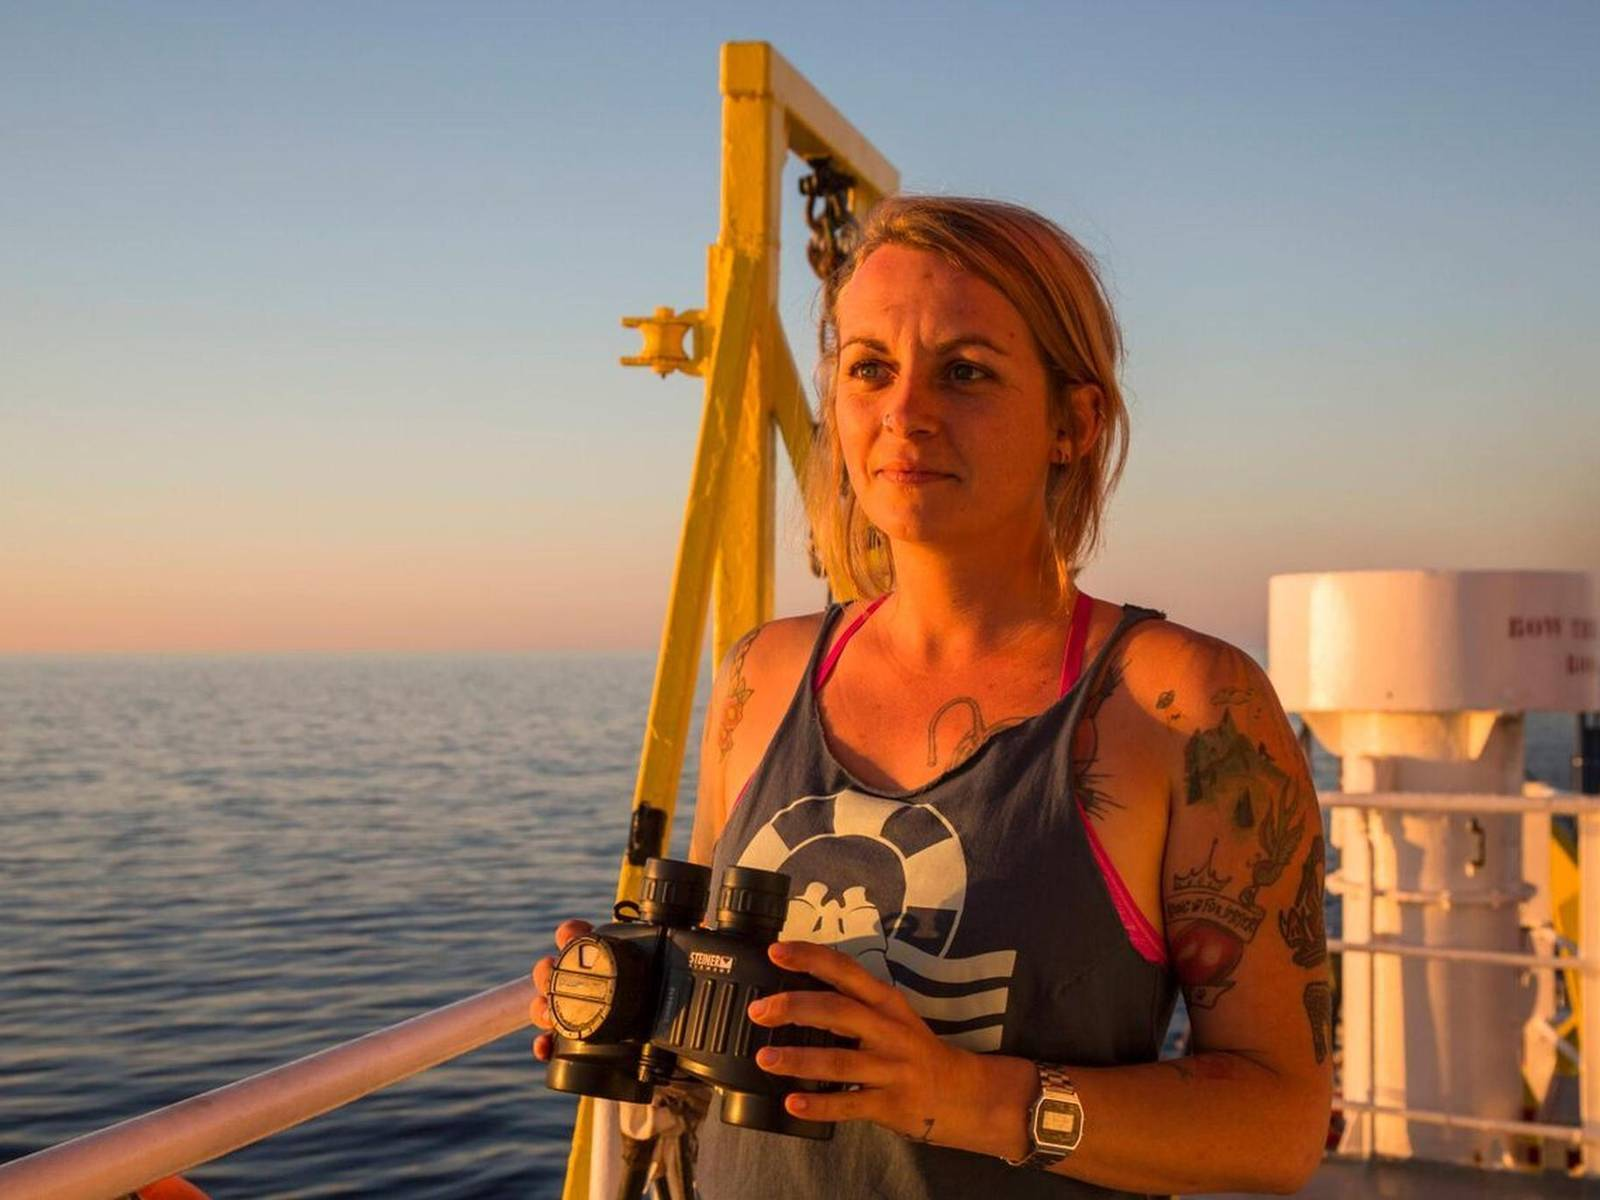 Pia Kemp, Female Boat Captain Facing 20 Years in Jail For Helping Oppressed People